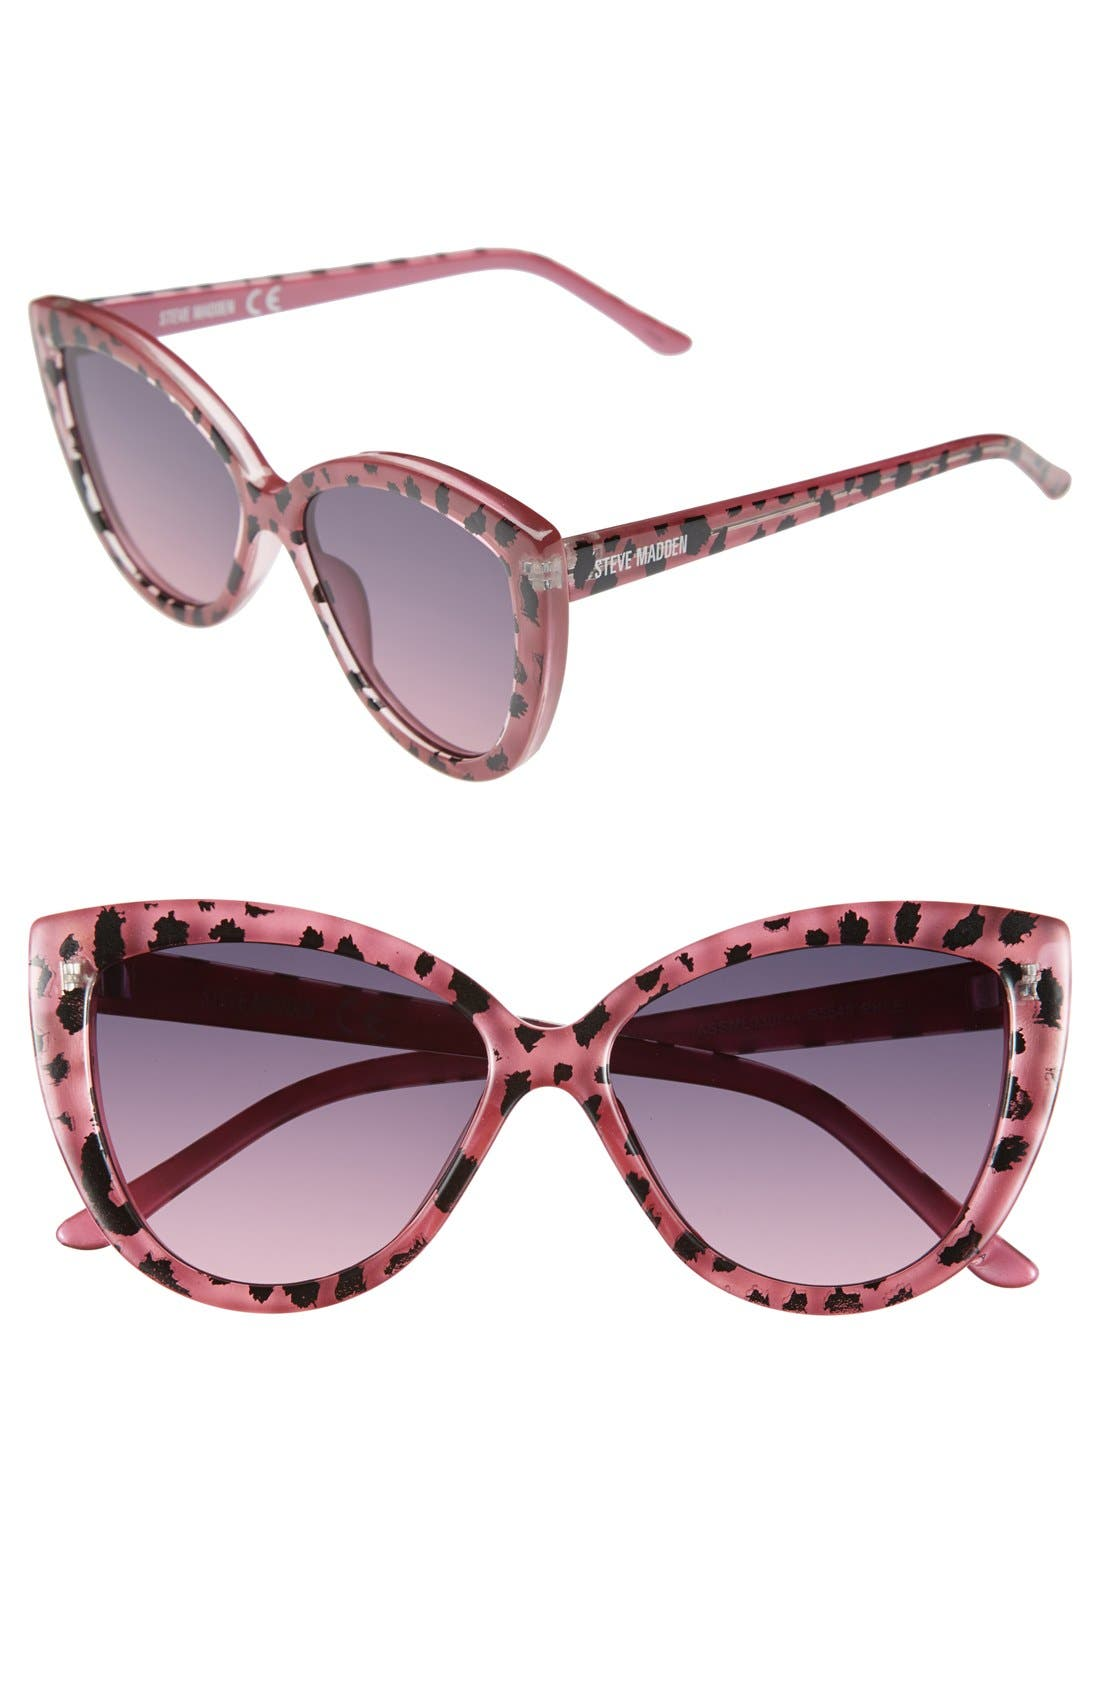 Main Image - Steve Madden 54mm Animal Print Cat Eye Sunglasses